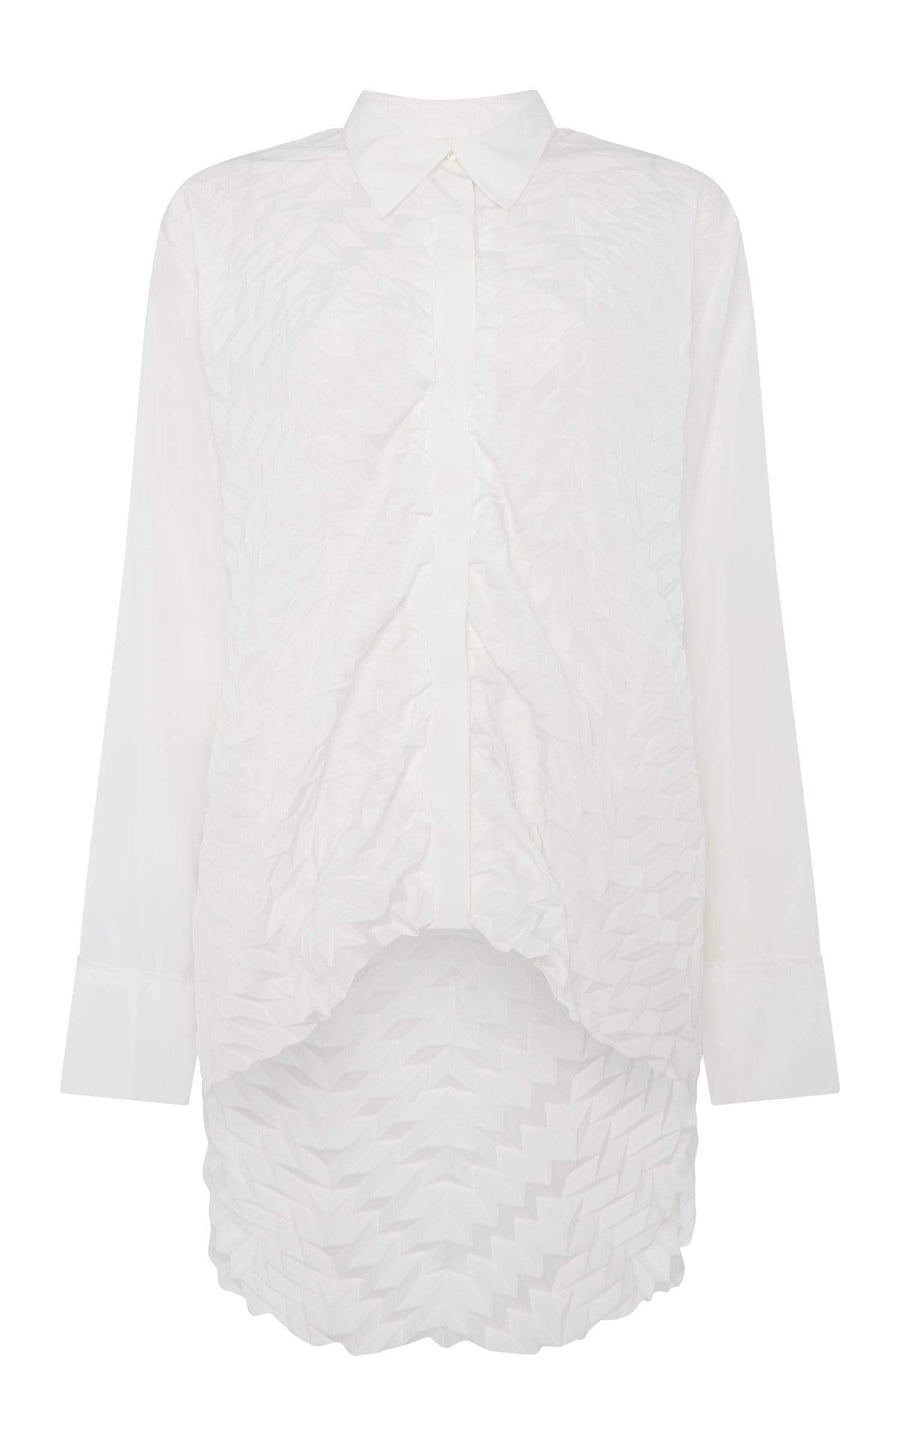 Catalina Top In White from Roland Mouret